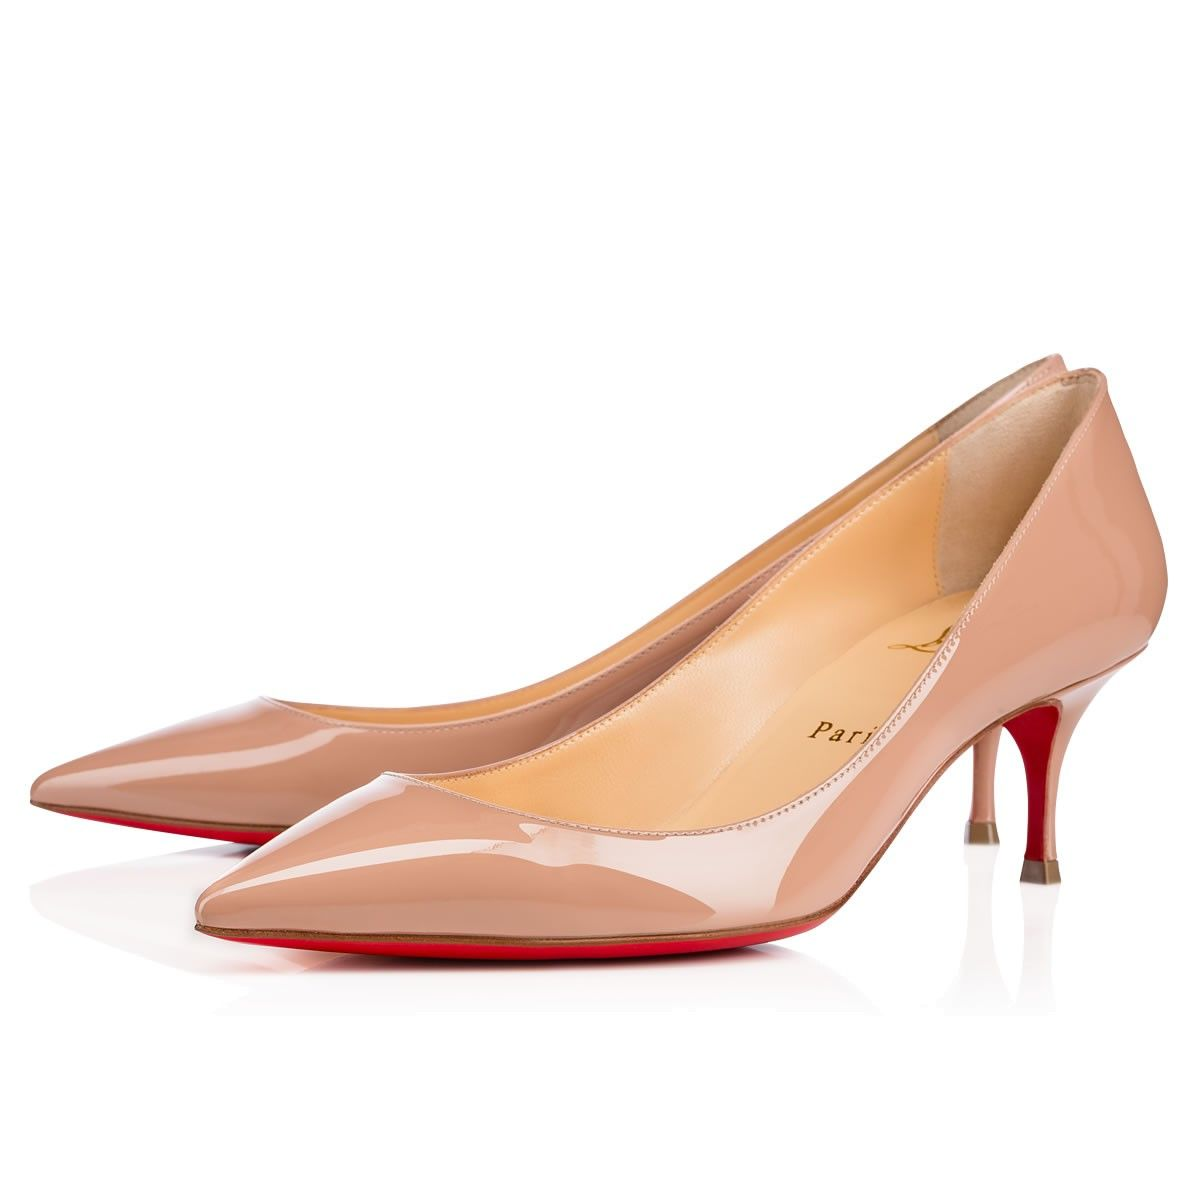 b2071f71f19 Pigalle Follies 55 Nude Patent Leather - Women Shoes - Christian ...